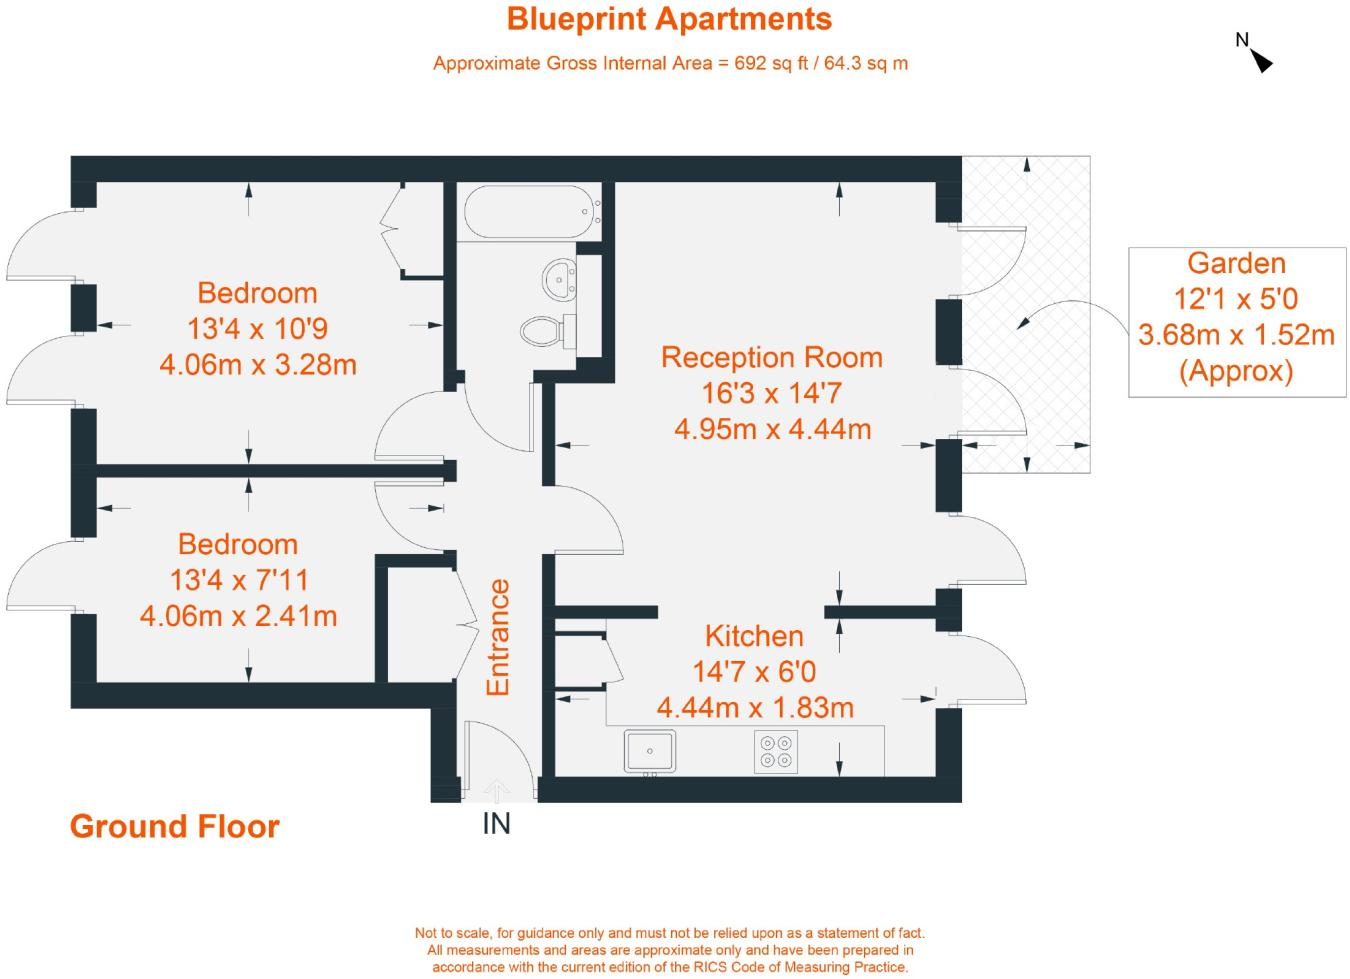 2 bedroom flat for sale in blueprint apartments balham grove 2 bedroom flat for sale in blueprint apartments balham grove balham sw12 malvernweather Gallery